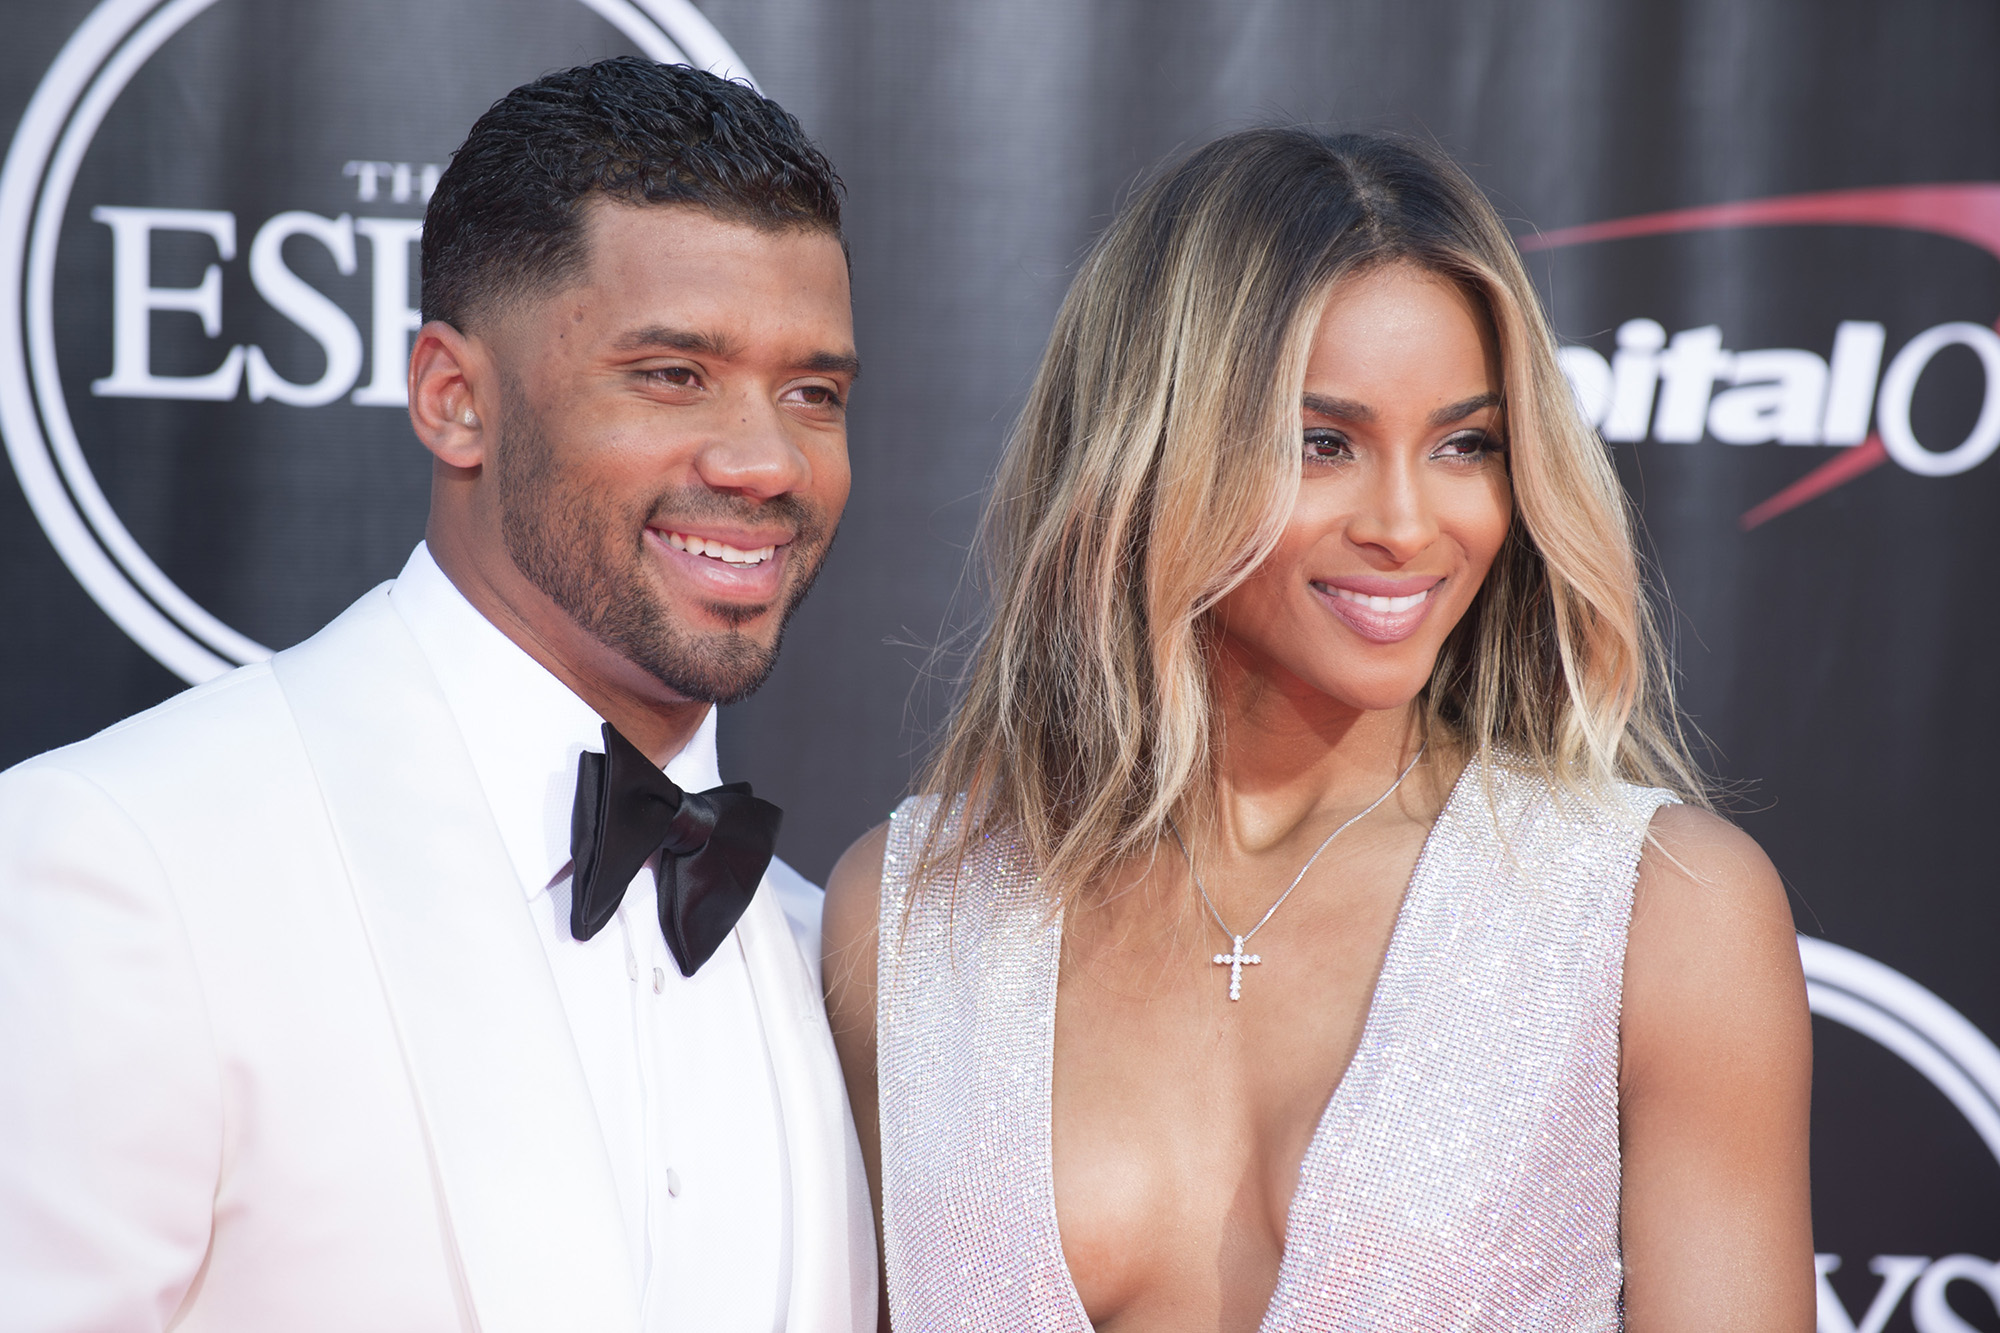 Russell Wilson and Ciara arrive at the 2016 ESPYs (Photo by Image Group LA/ABC via Getty Images)                   RUSSELL WILSON, CIARA